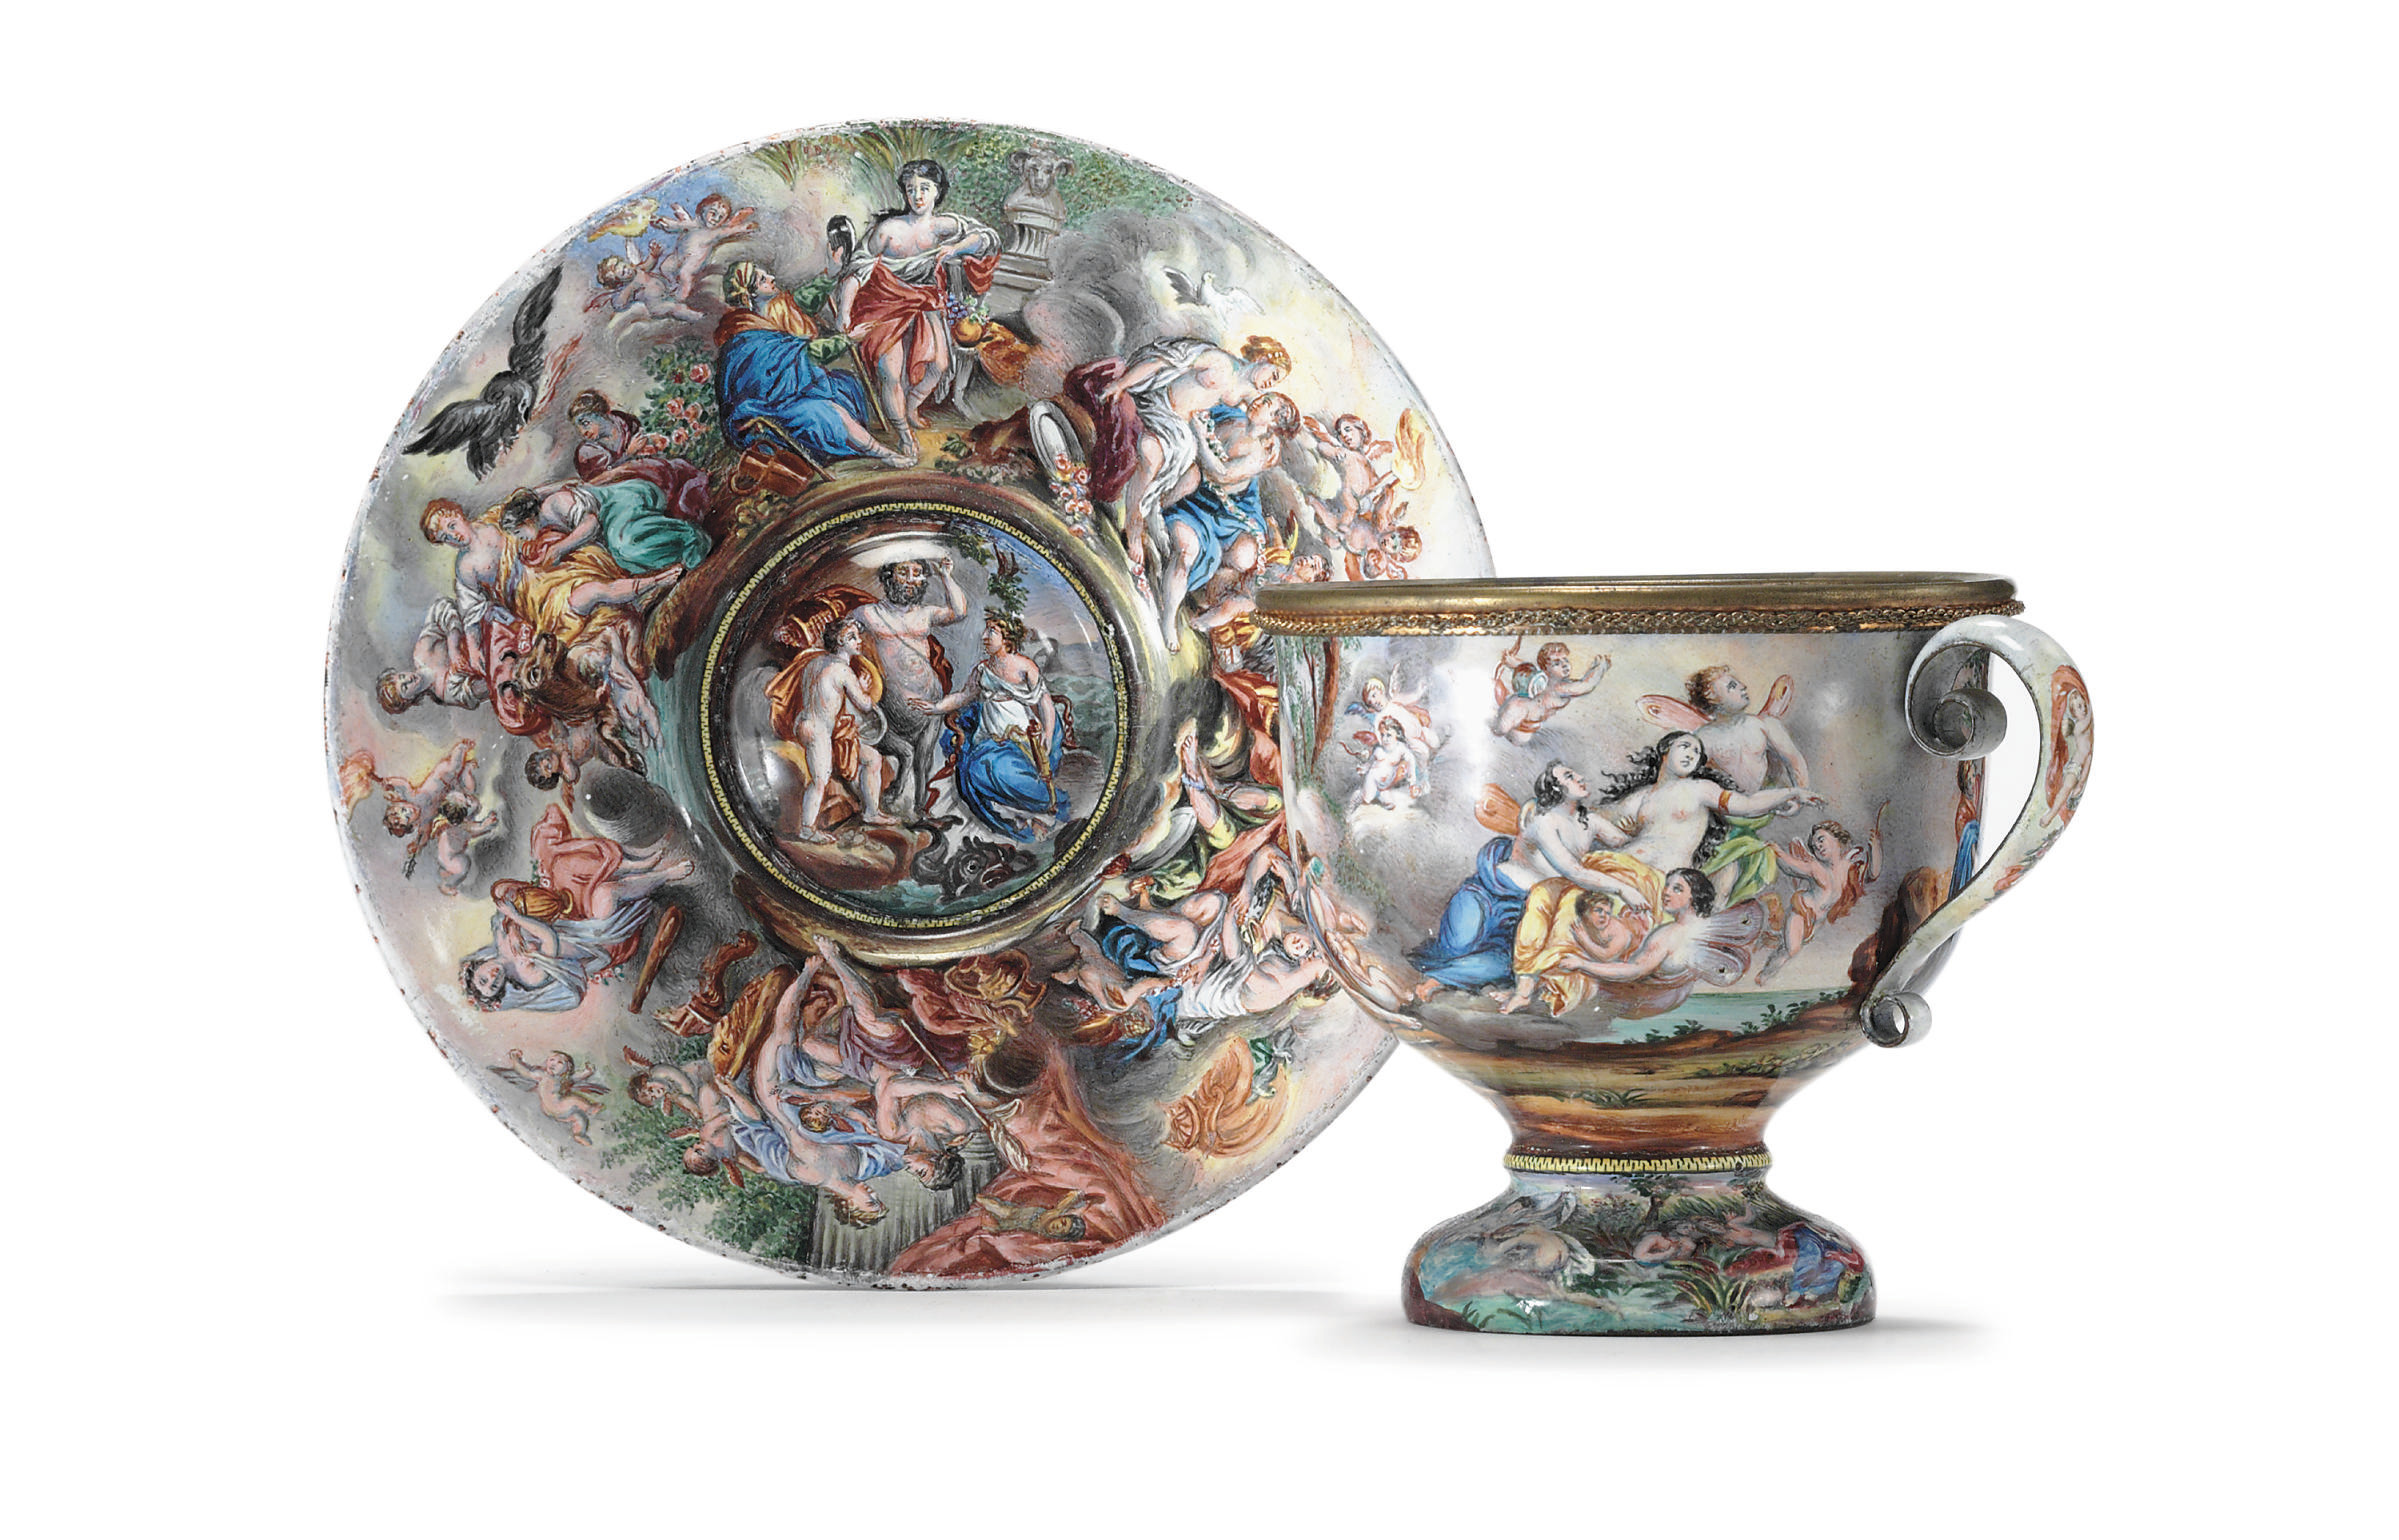 A VIENNESE ENAMEL CUP AND SAUC